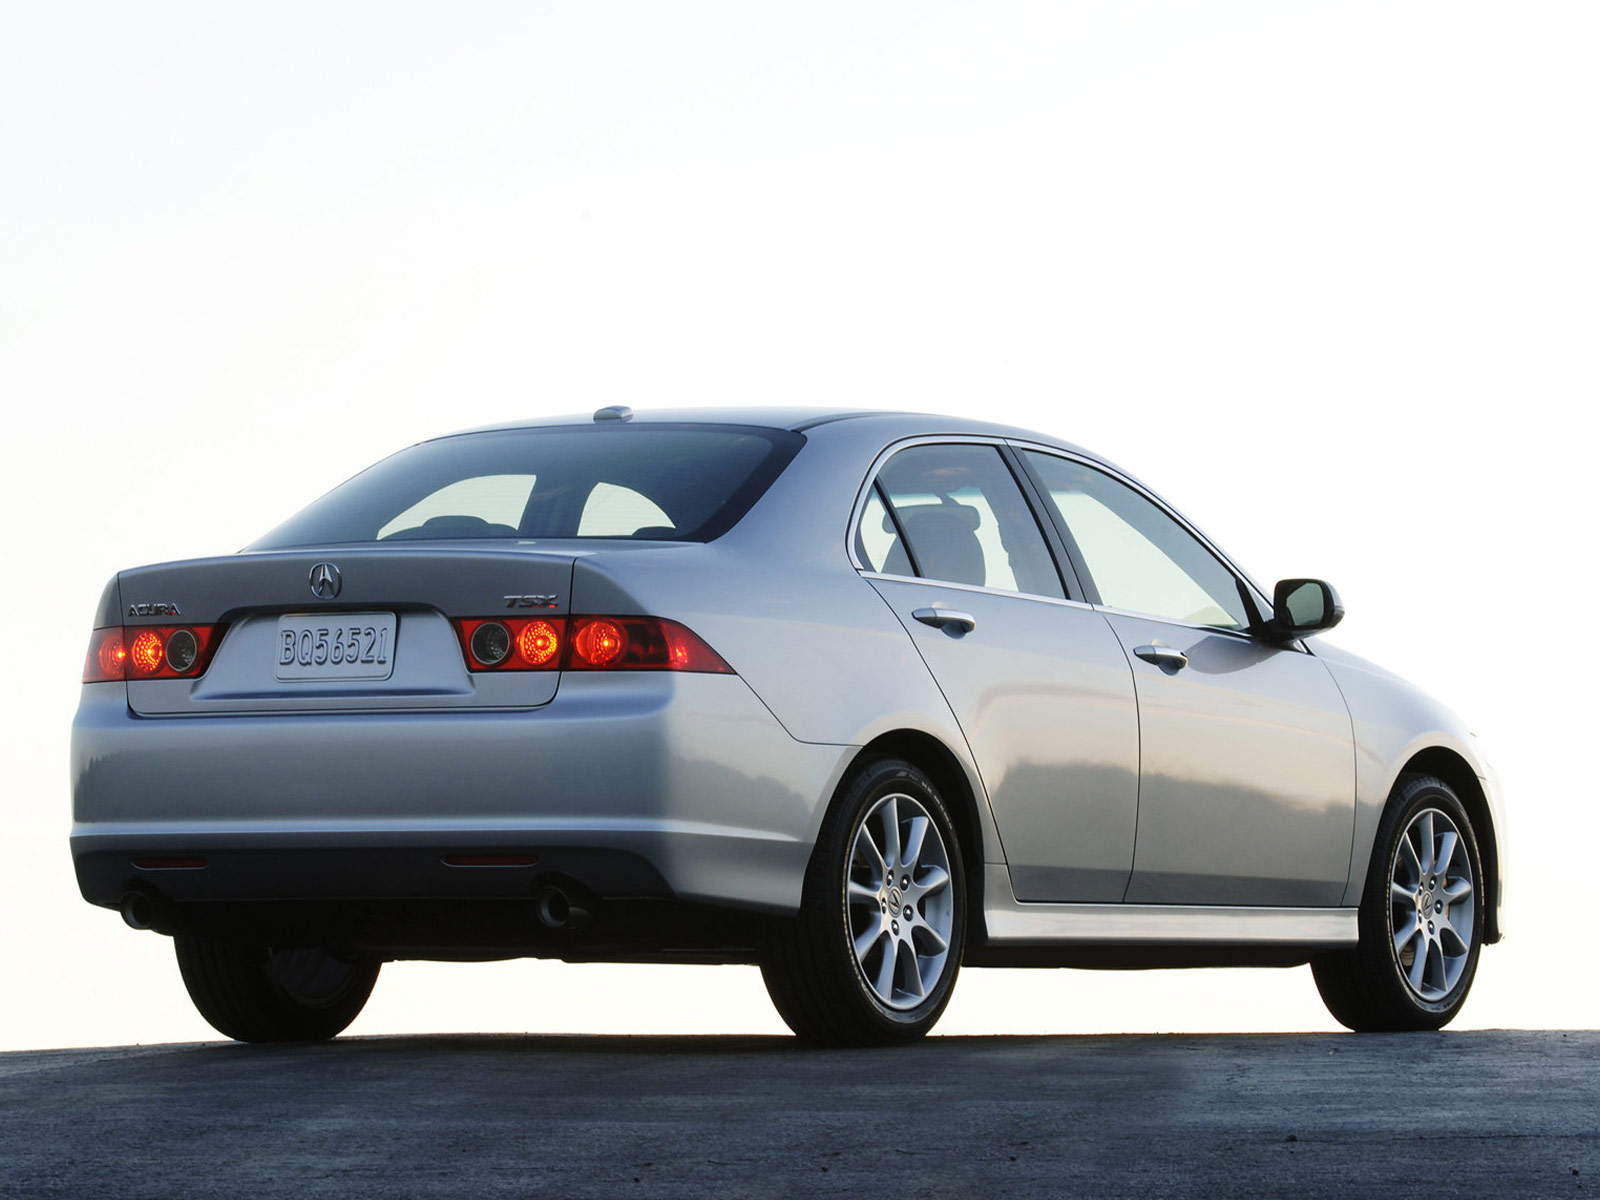 2007 acura tsx japanese car photos. Black Bedroom Furniture Sets. Home Design Ideas